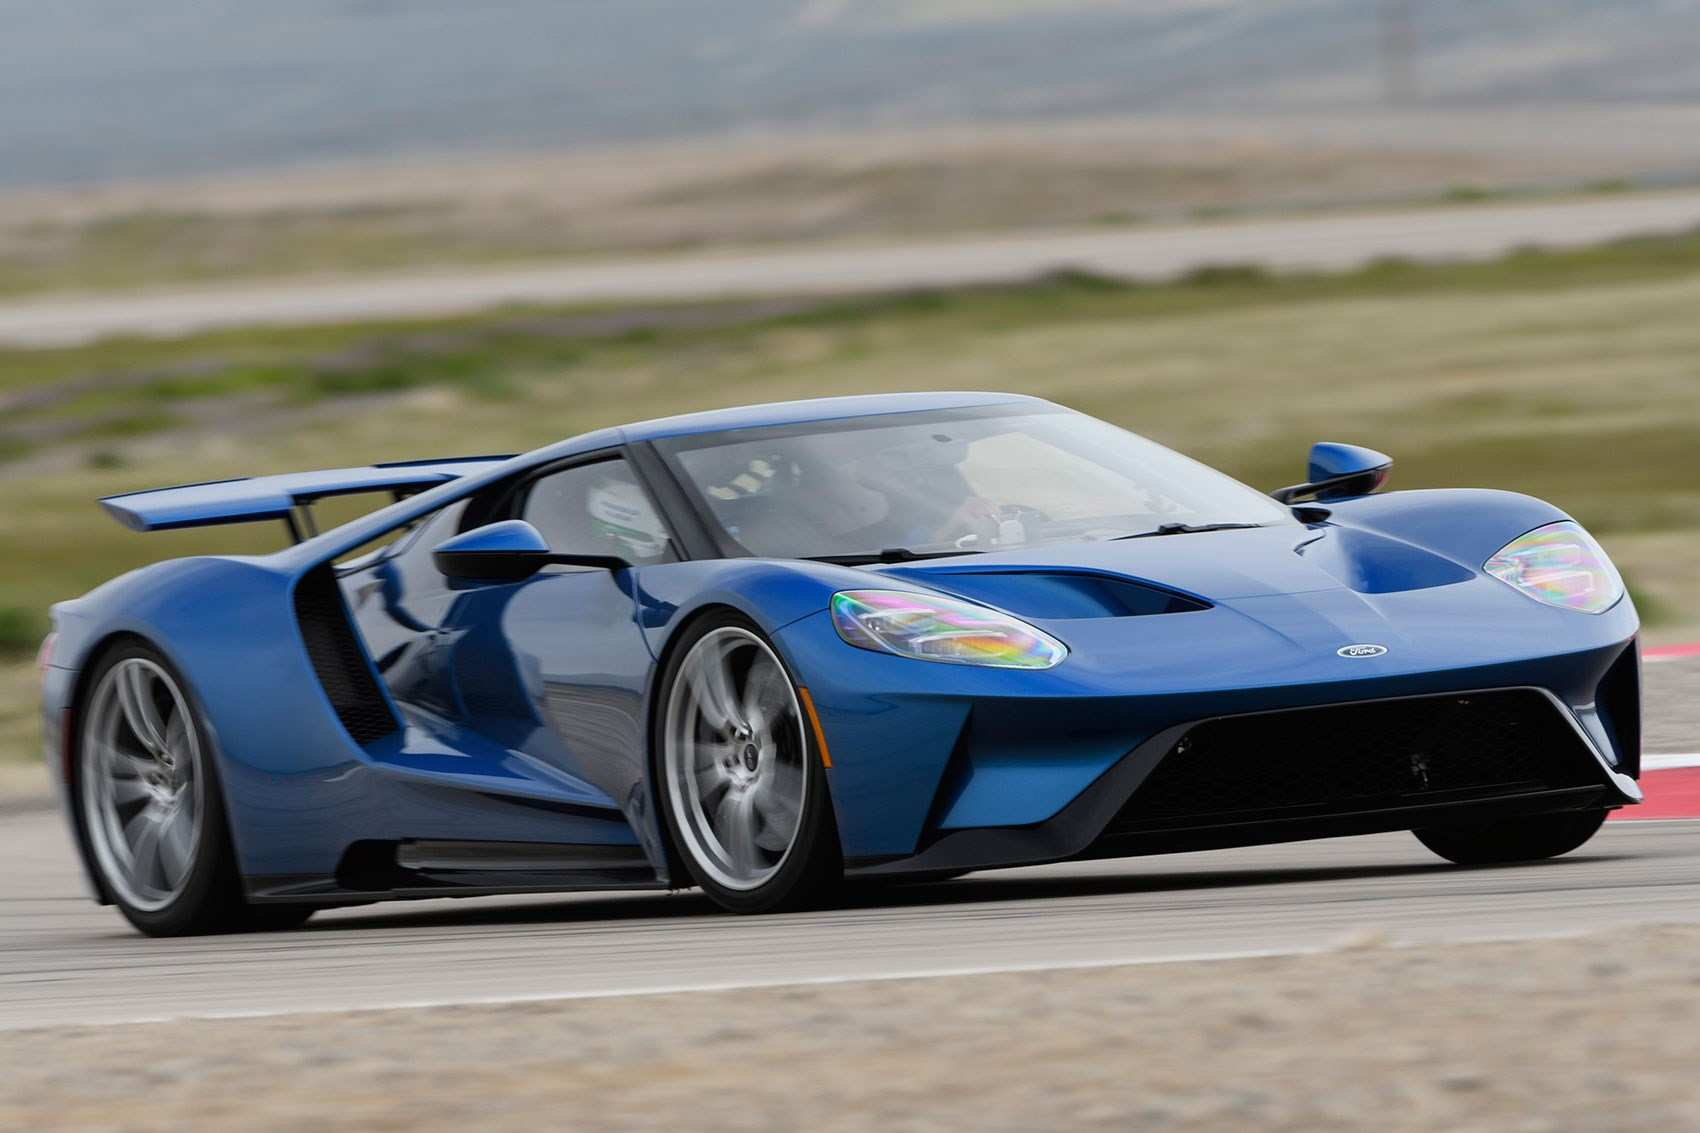 63 All New 2020 Ford Gt Supercar Images